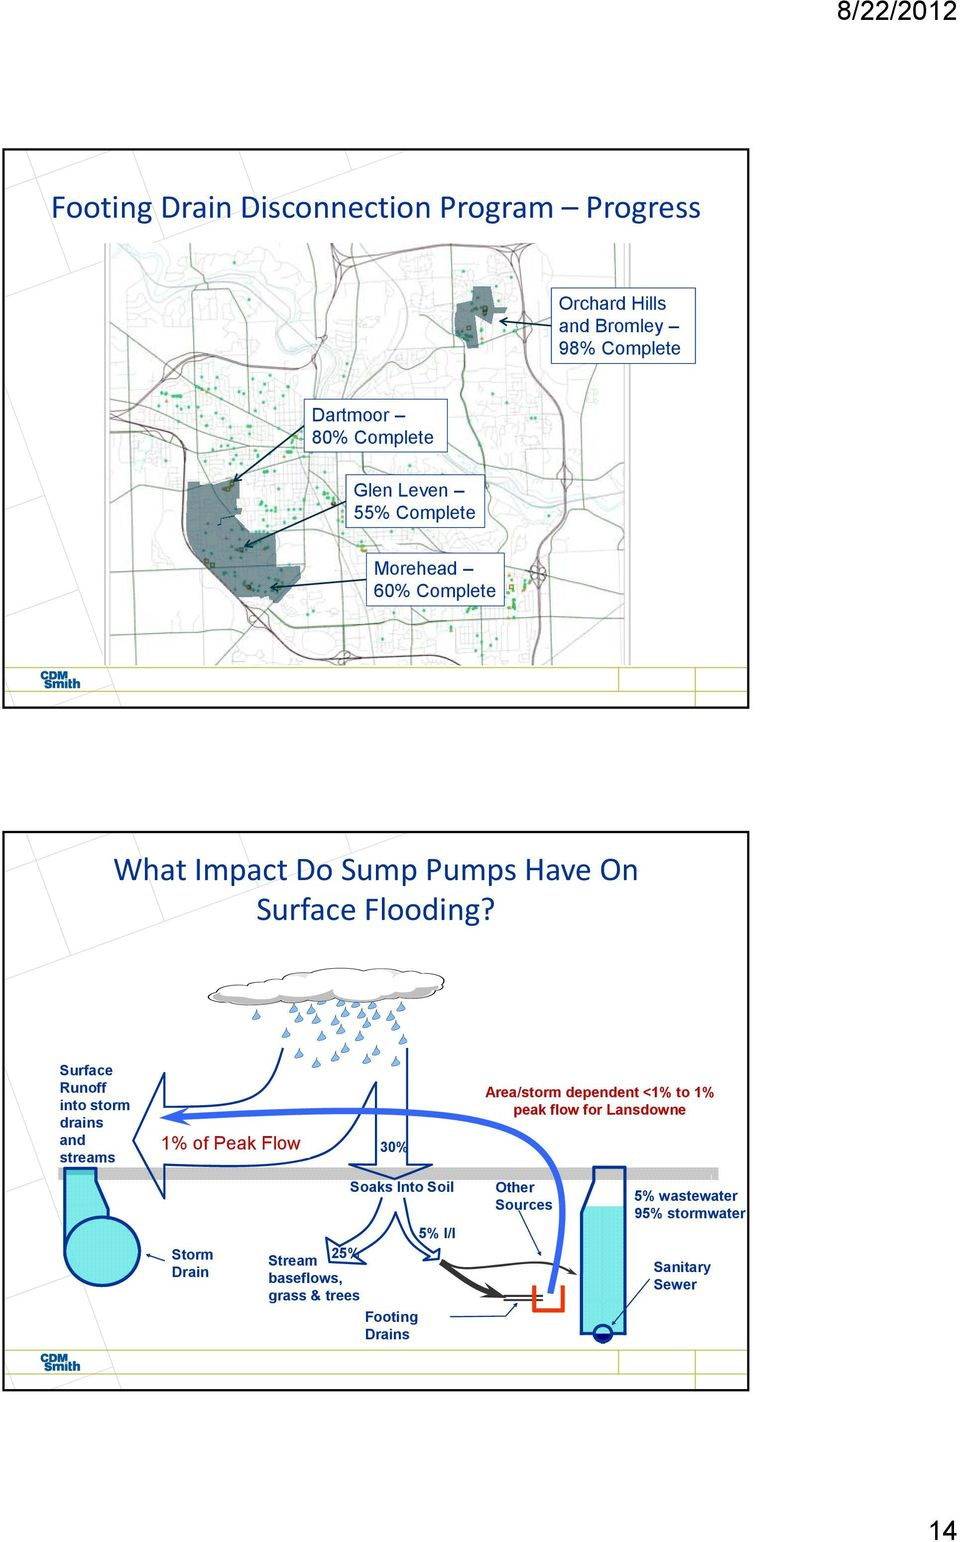 Surface Runoff into storm drains and streams 70% 1% of Peak Flow 30% Area/storm dependent <1% to 1% peak flow for